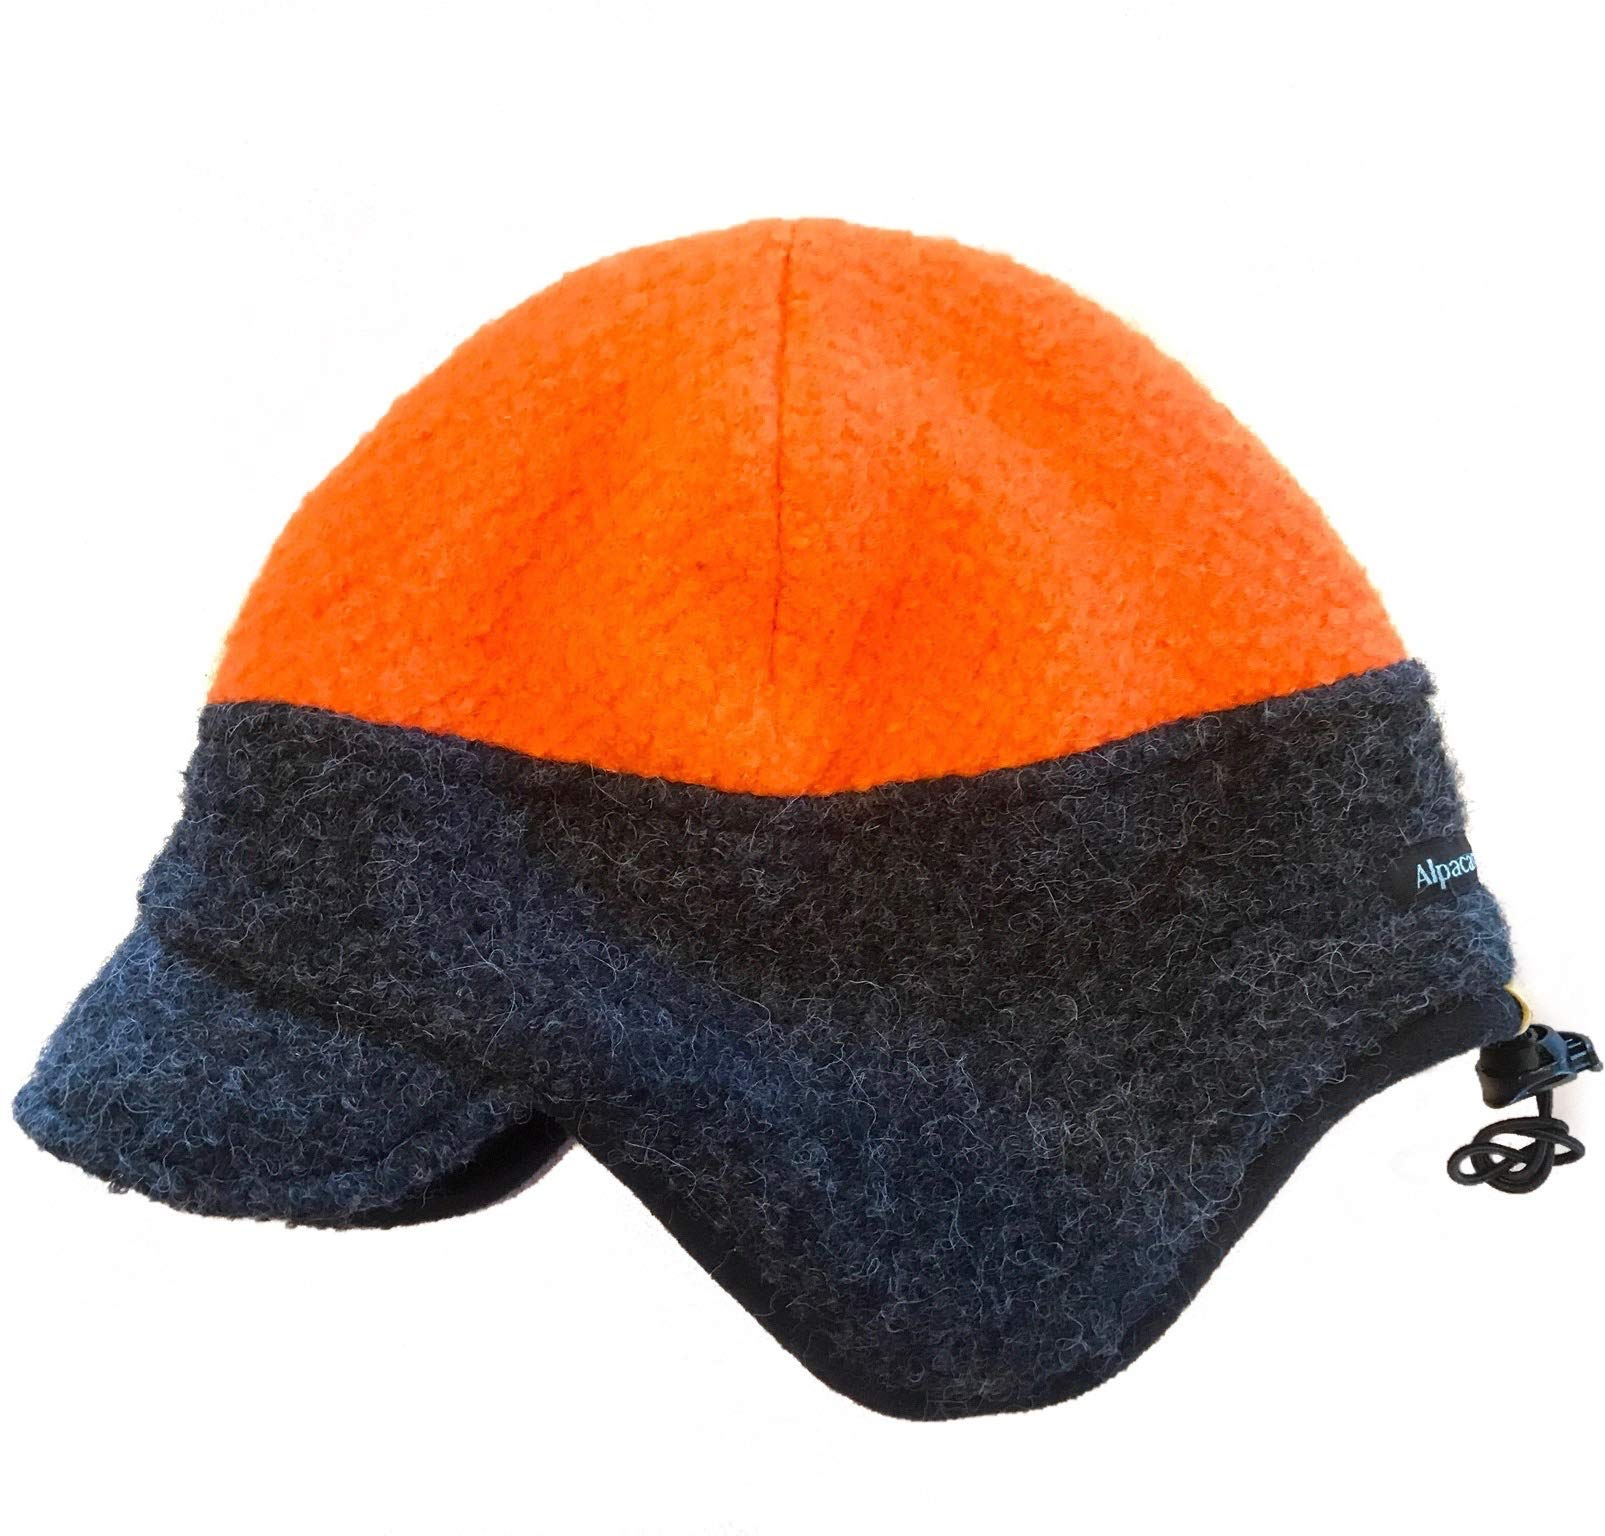 Alpacas of Montana Extreme Warmth Adjustable Windstopper Sportsman's Hunting Hat - 3 Size and Color Options Uni-Sex (Orange/Gray, Medium)